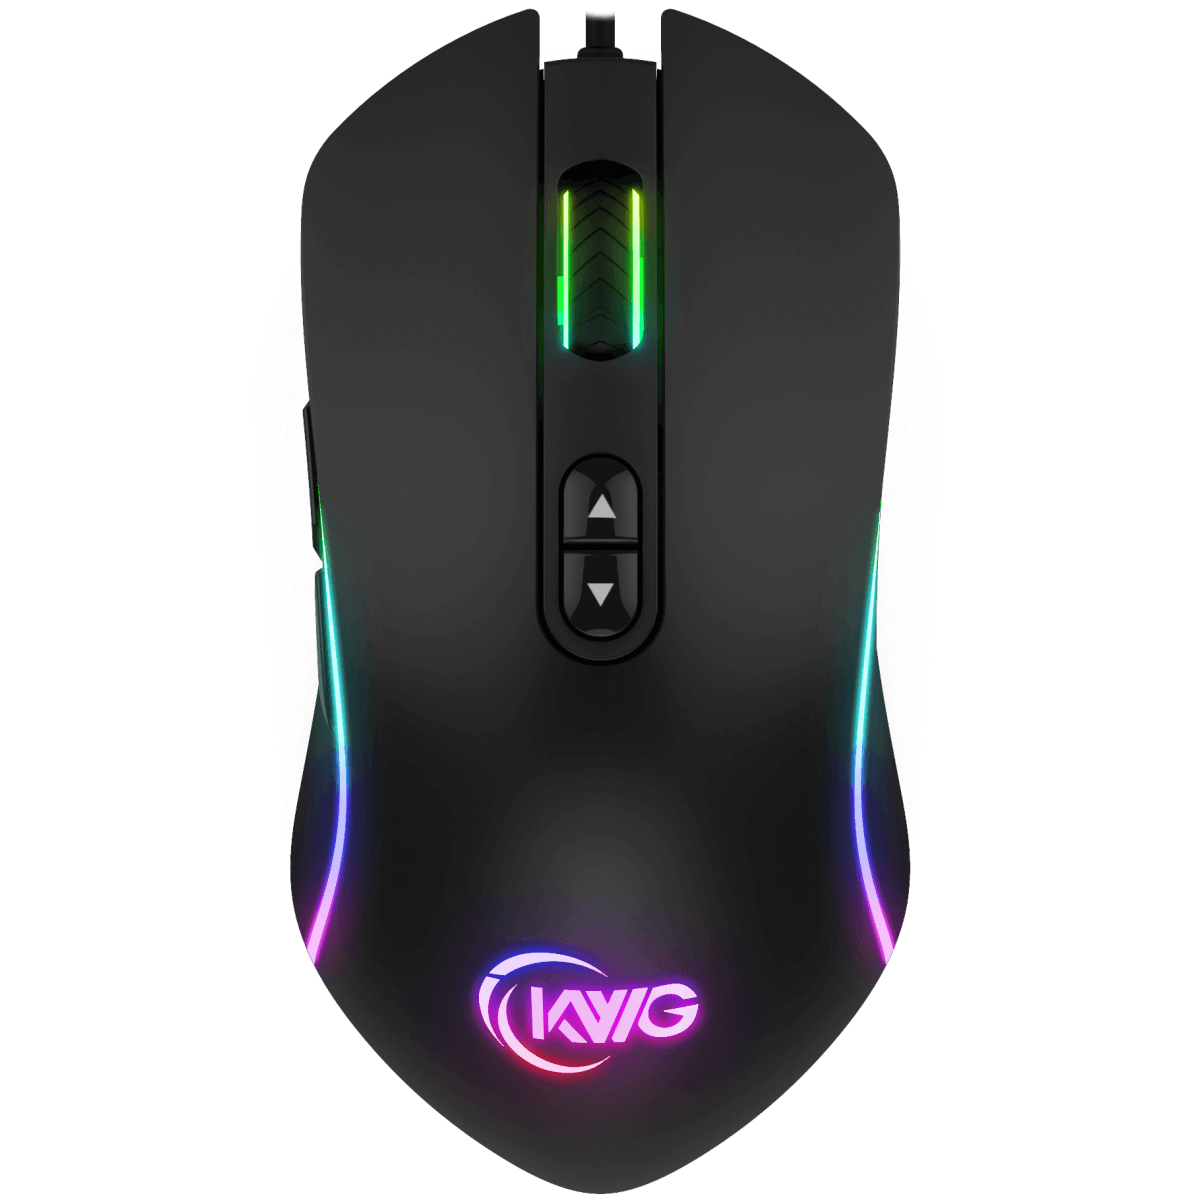 Mouse Gamer RGB KWG Orion P1 12000 DPI 7 Botões Black